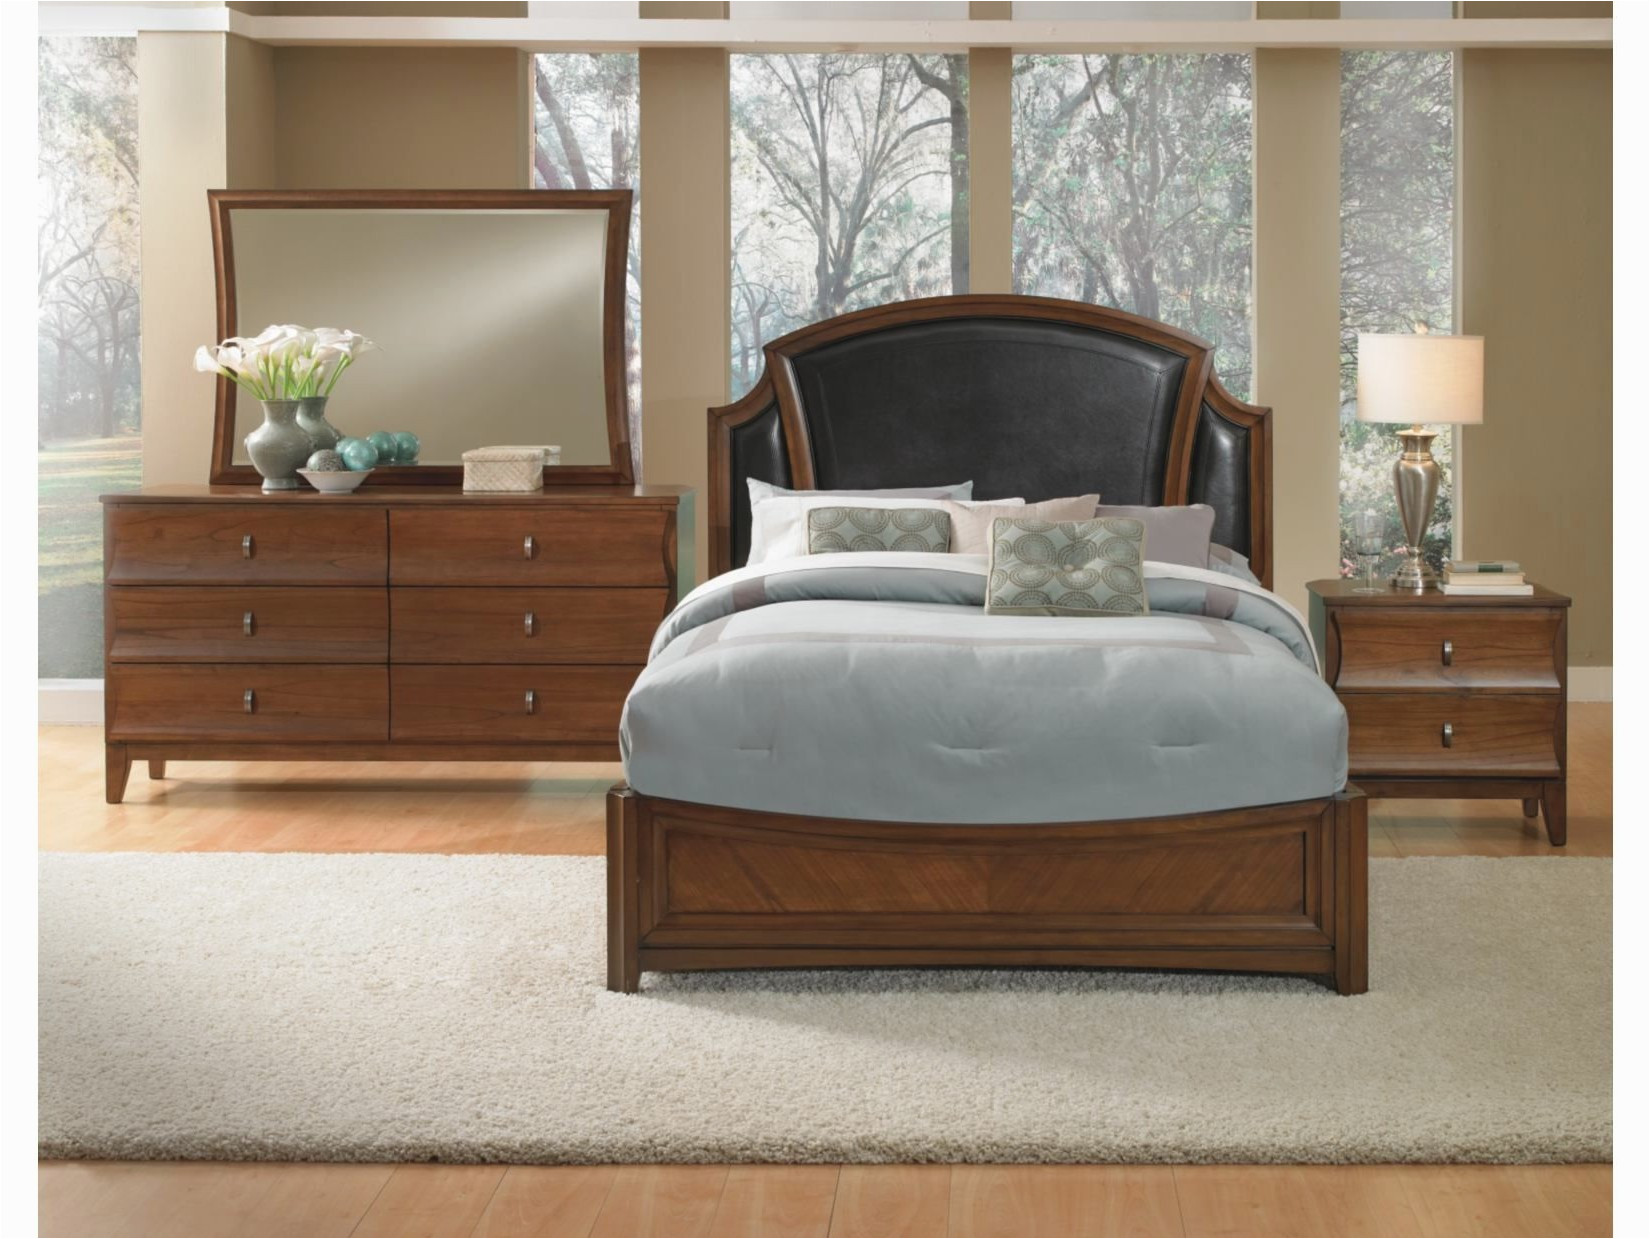 value city daybed stunning infinity 6 pc bedroom package value city furniture